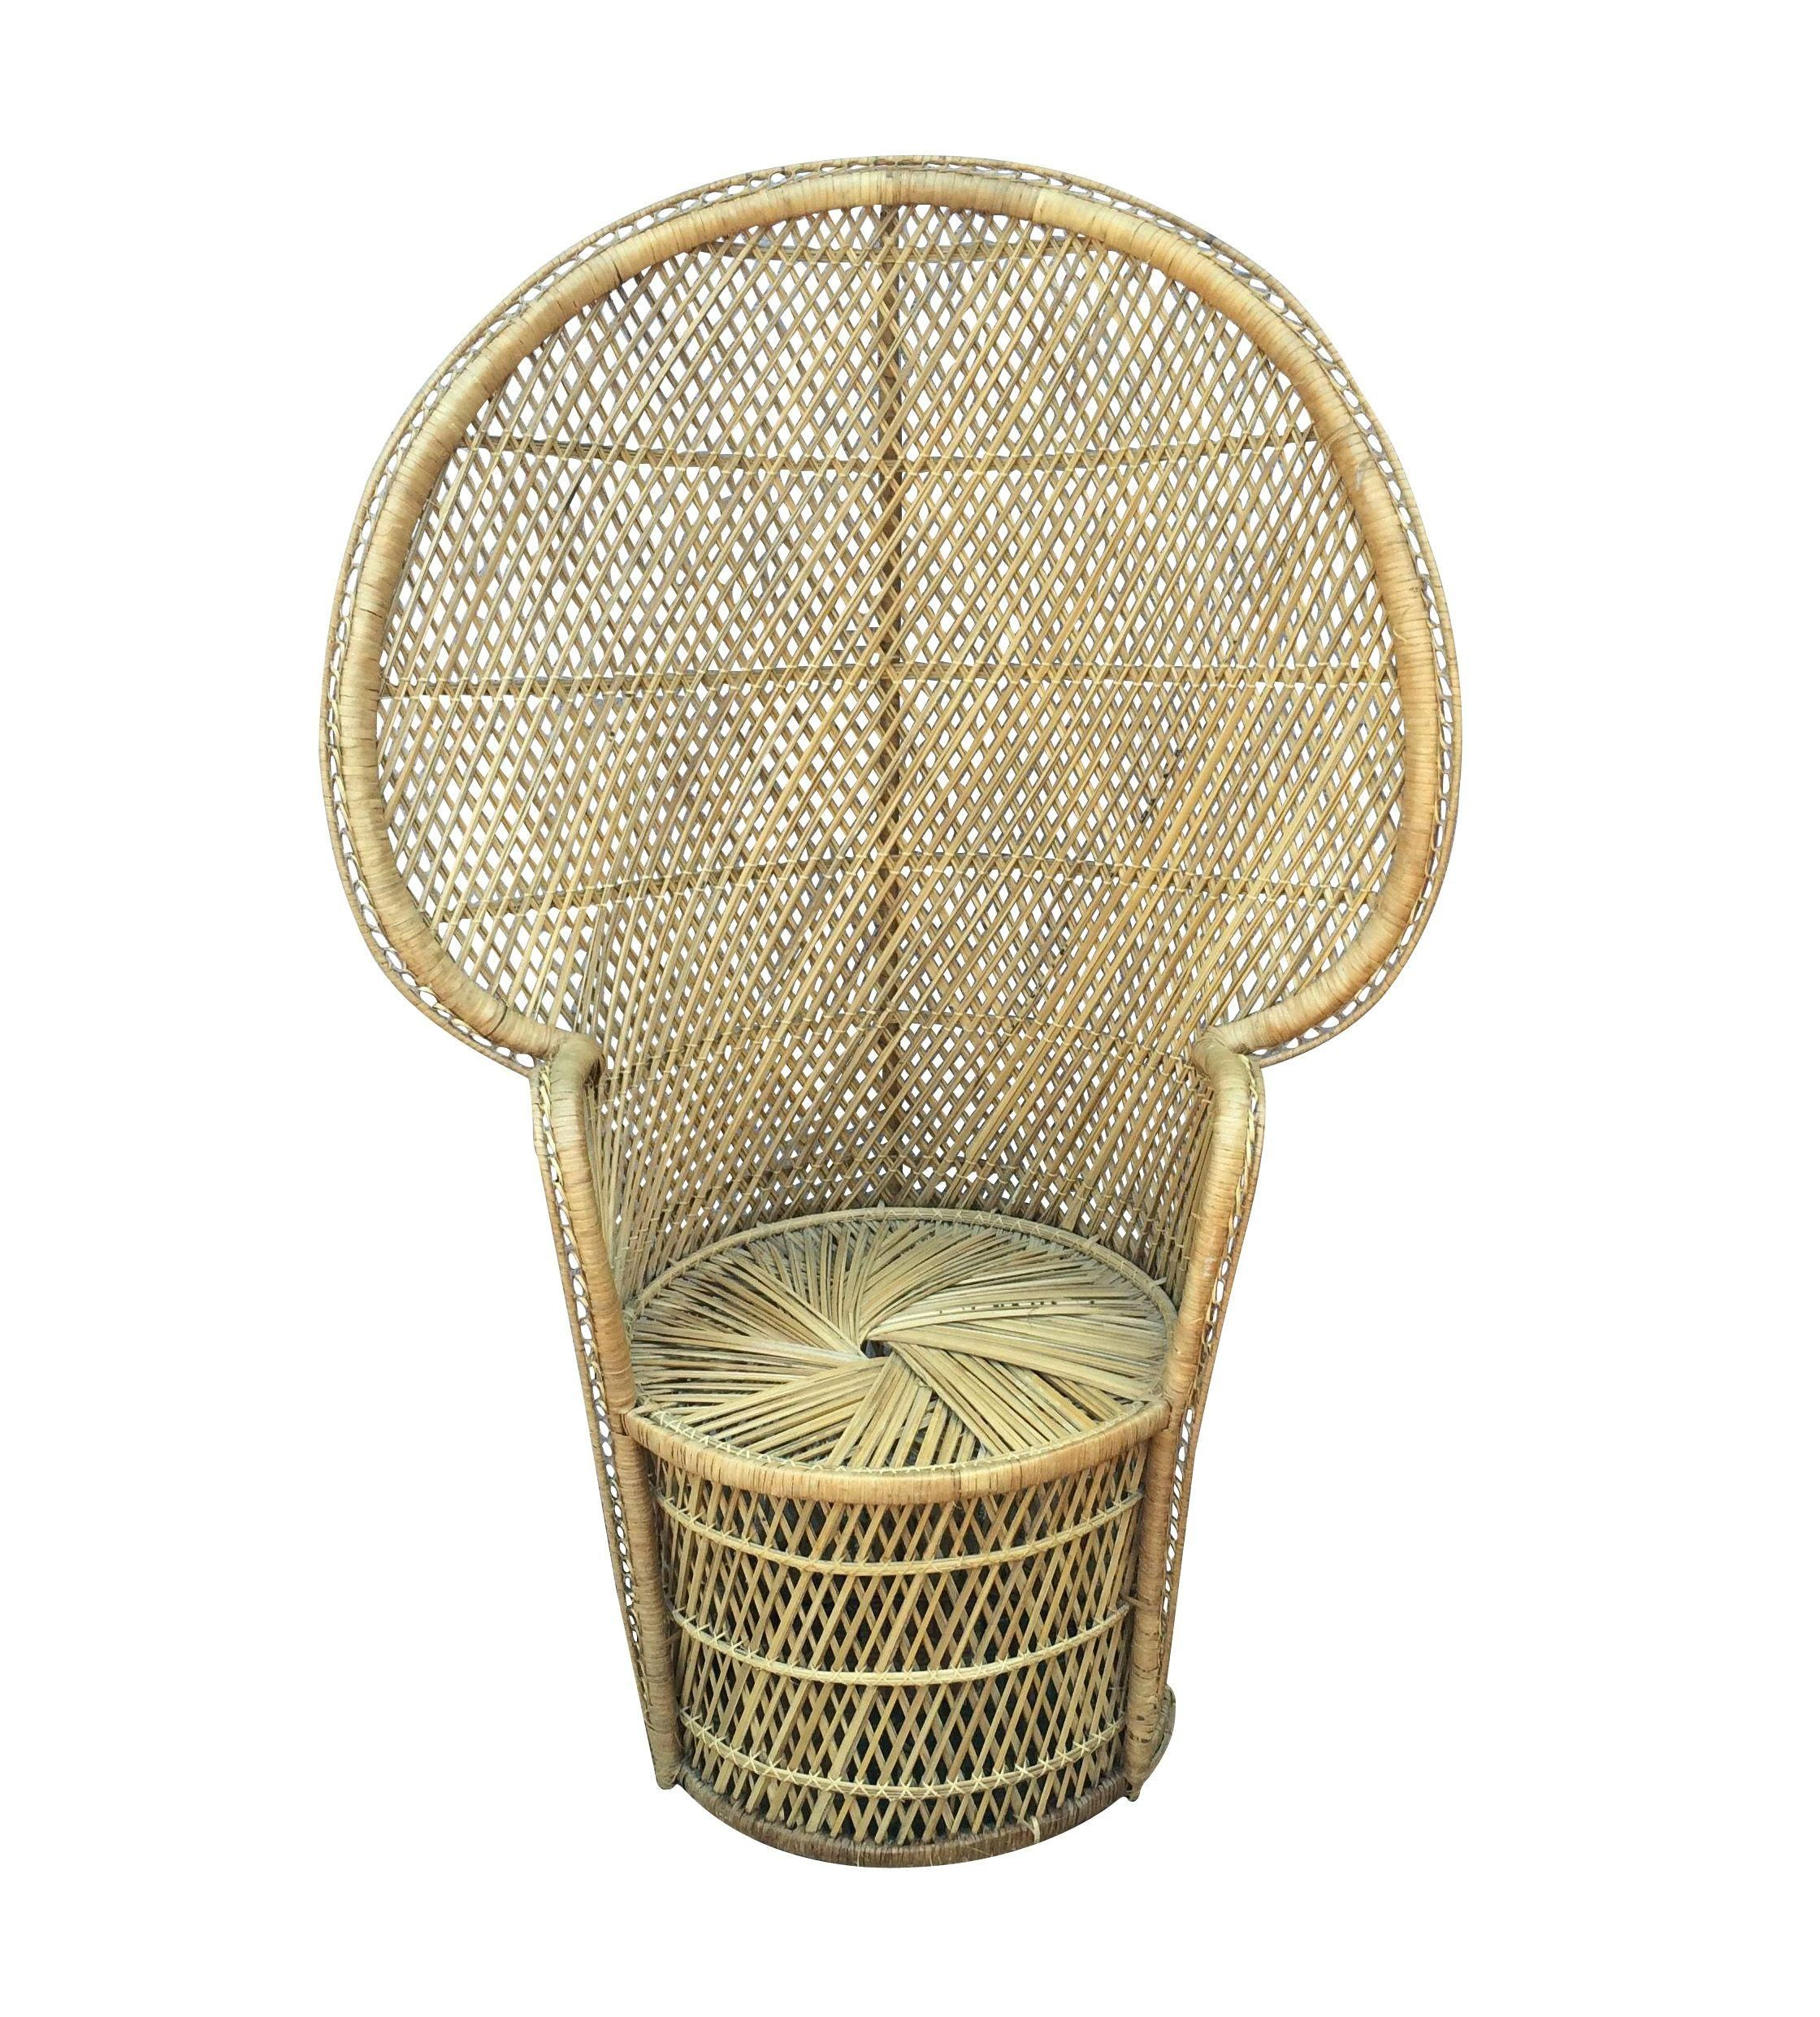 Sold vintage peacock chair wicker peacock chair peacock